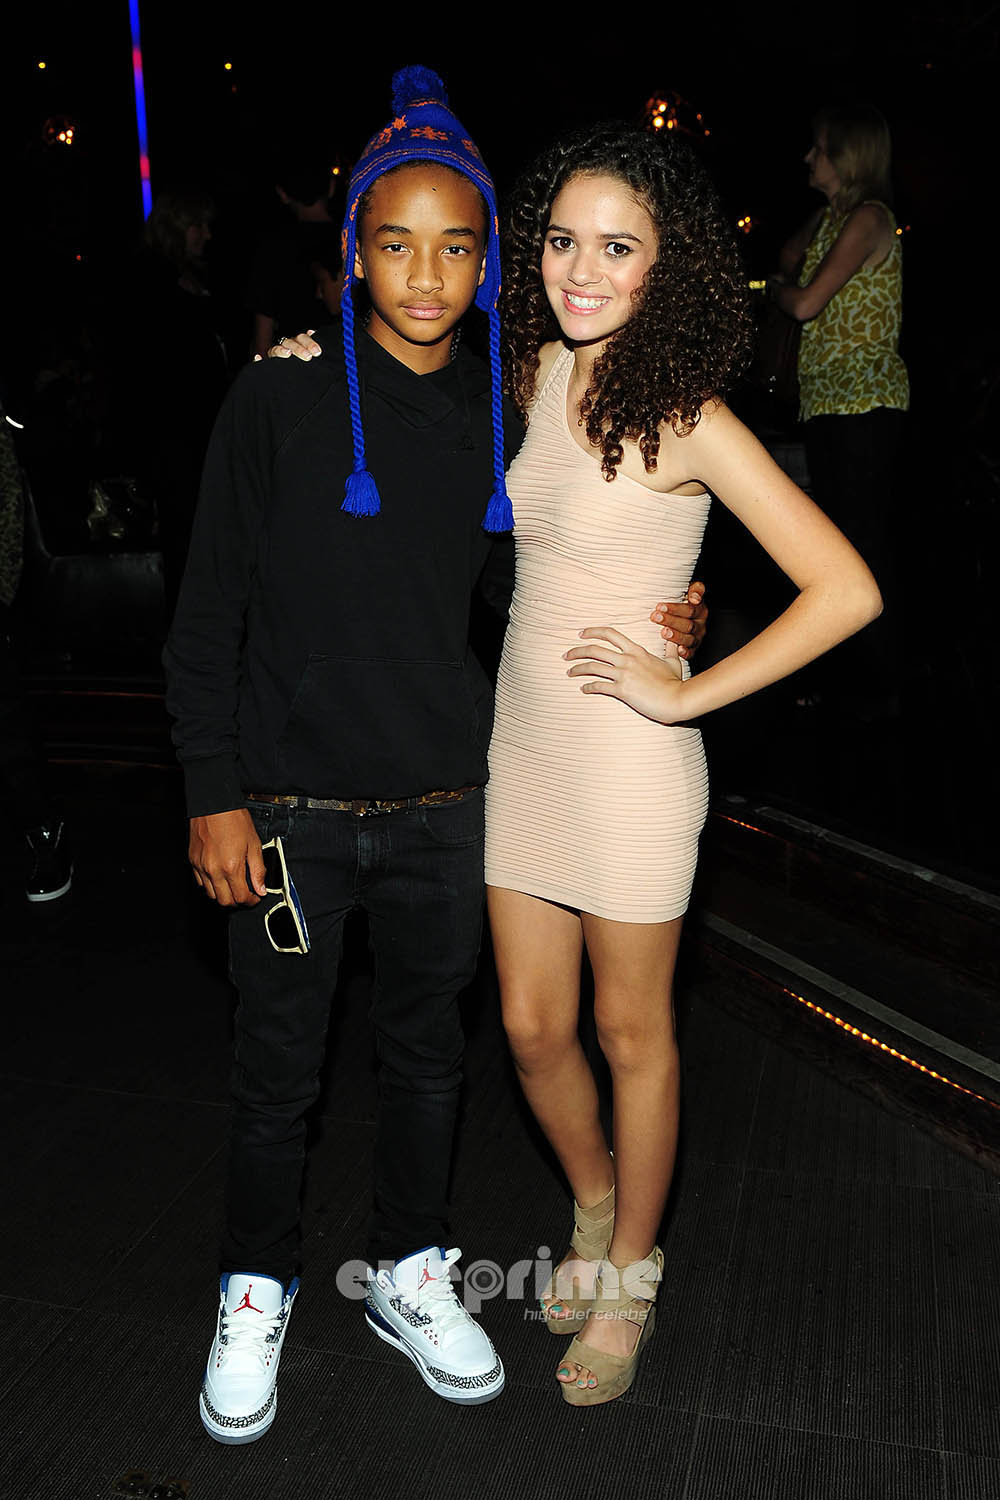 Madison Pettis And Jaden Smith Kissing Hollywood Dreams ♥: ...